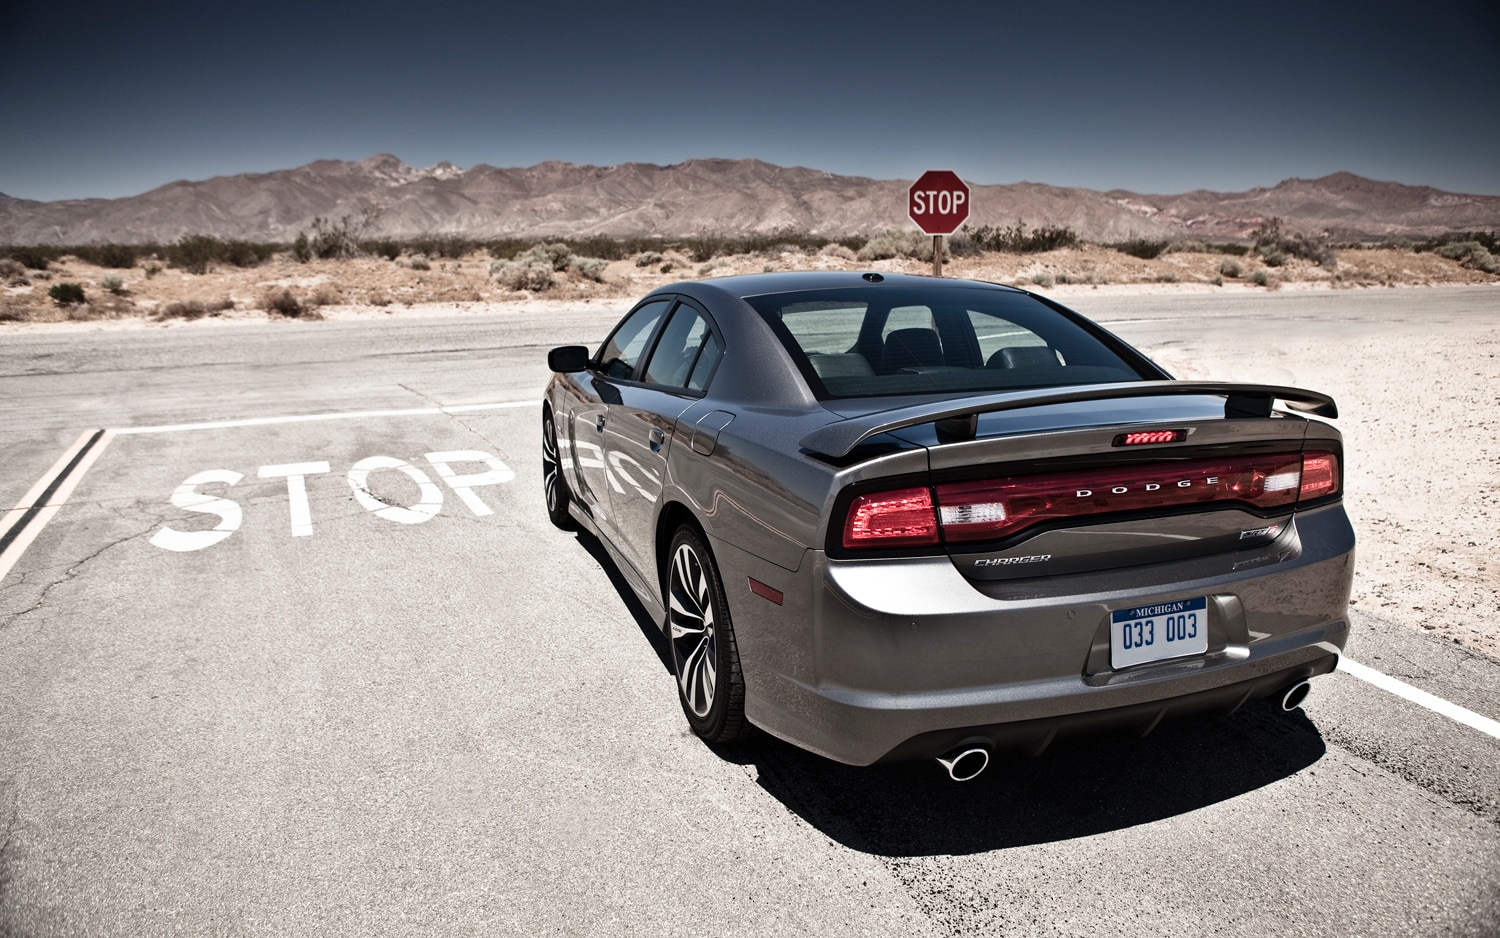 2012 Dodge Charger SRT8 Rear End1